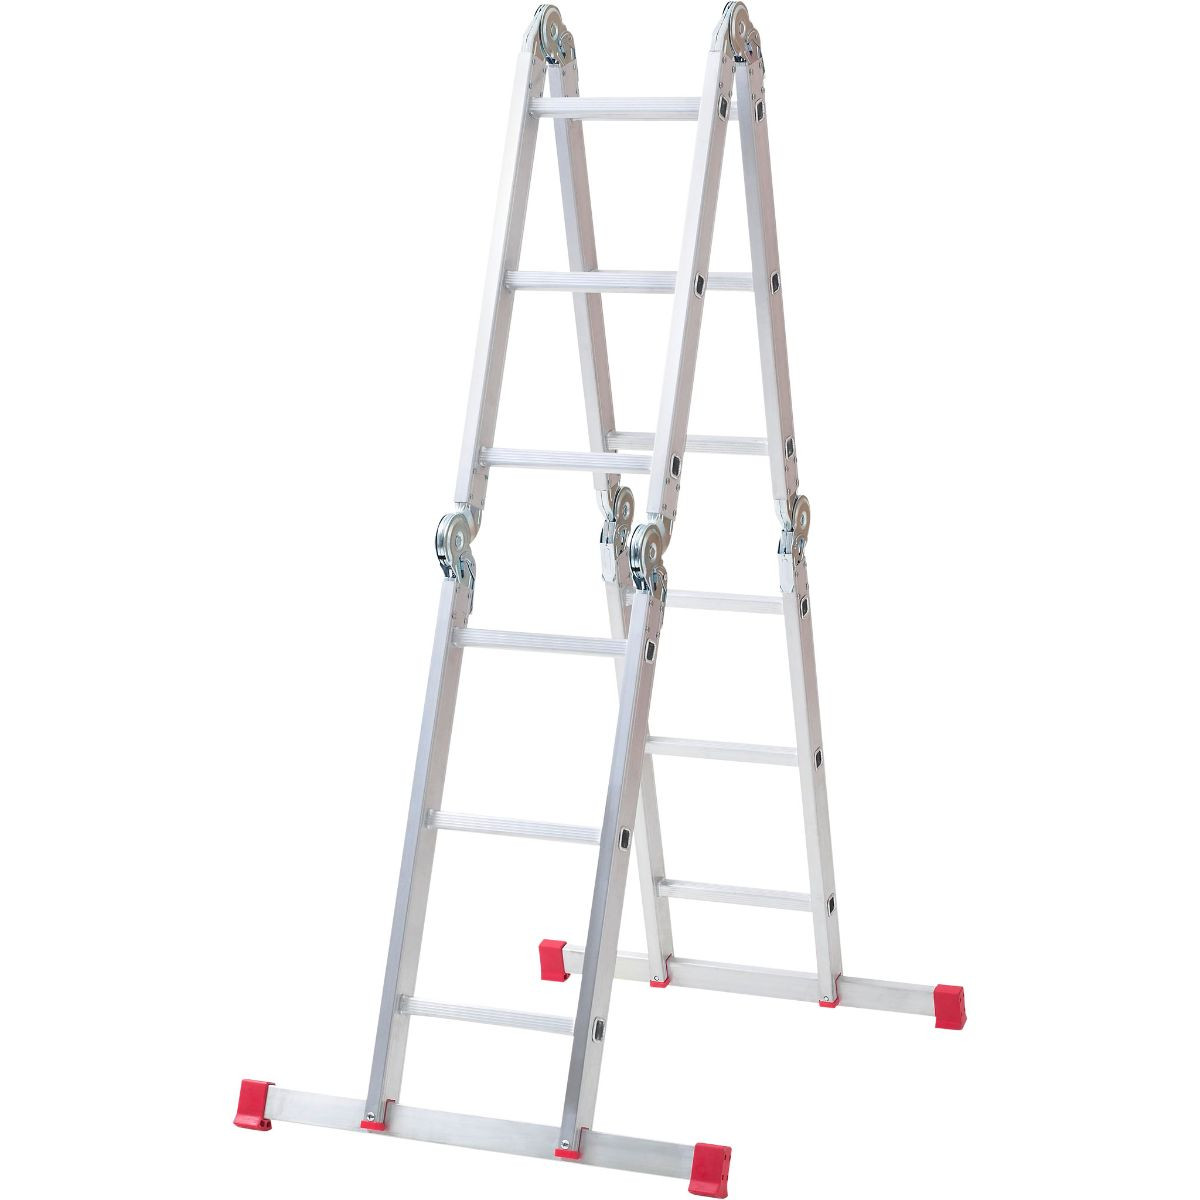 Combination ladder 5 way & platform wall mounted clothes line outdoor